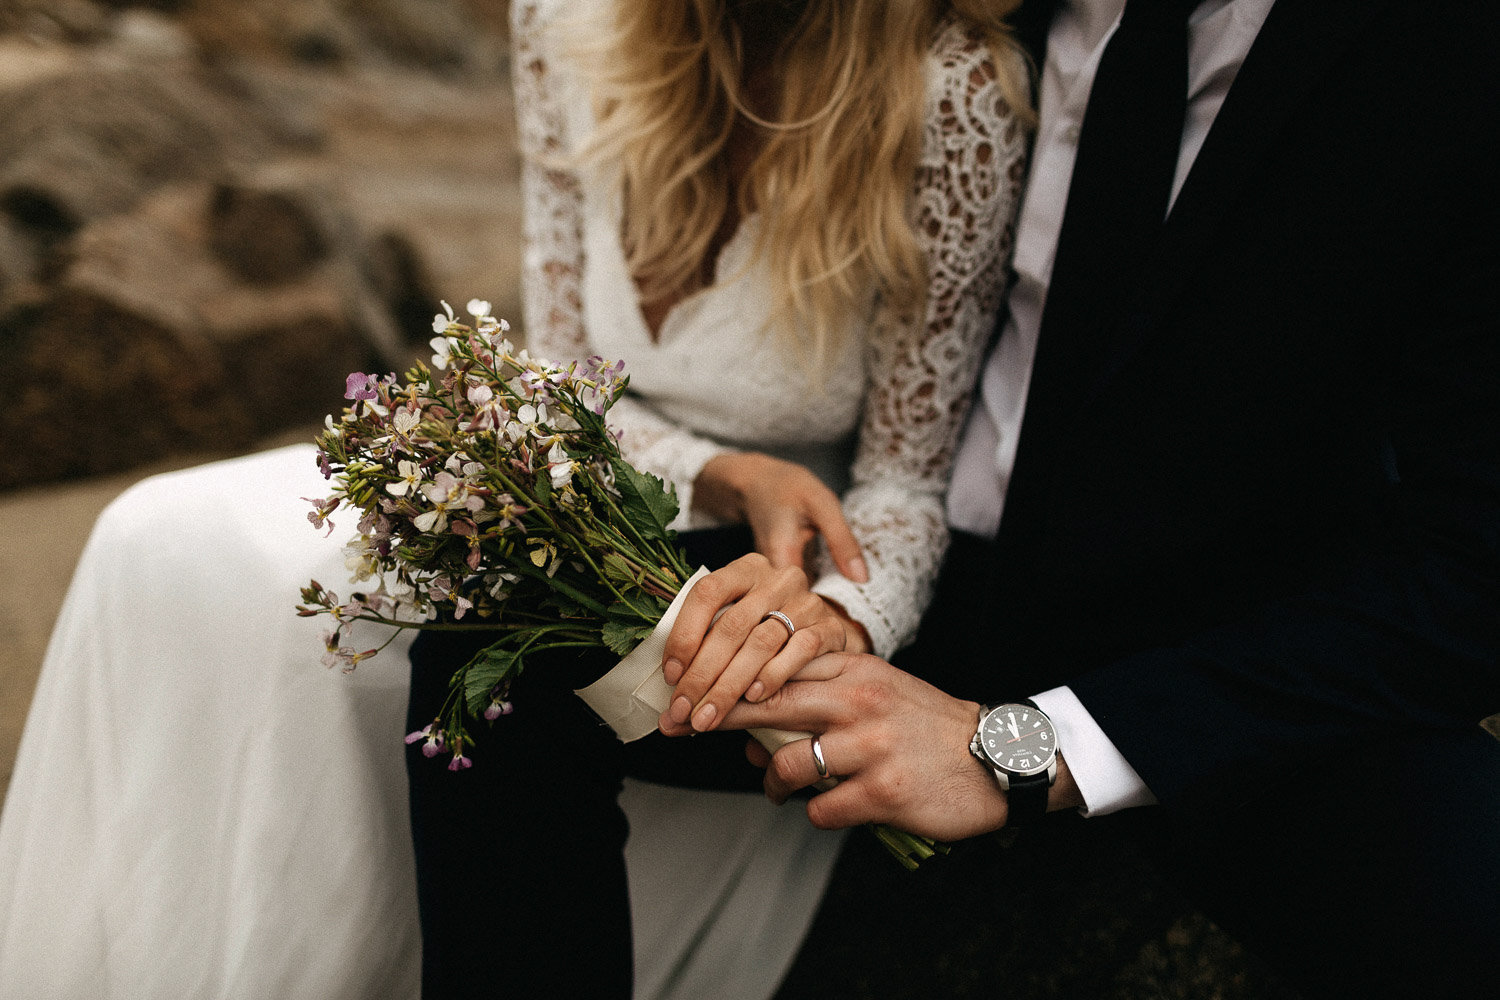 Image of wedding rings and wedding bouquet